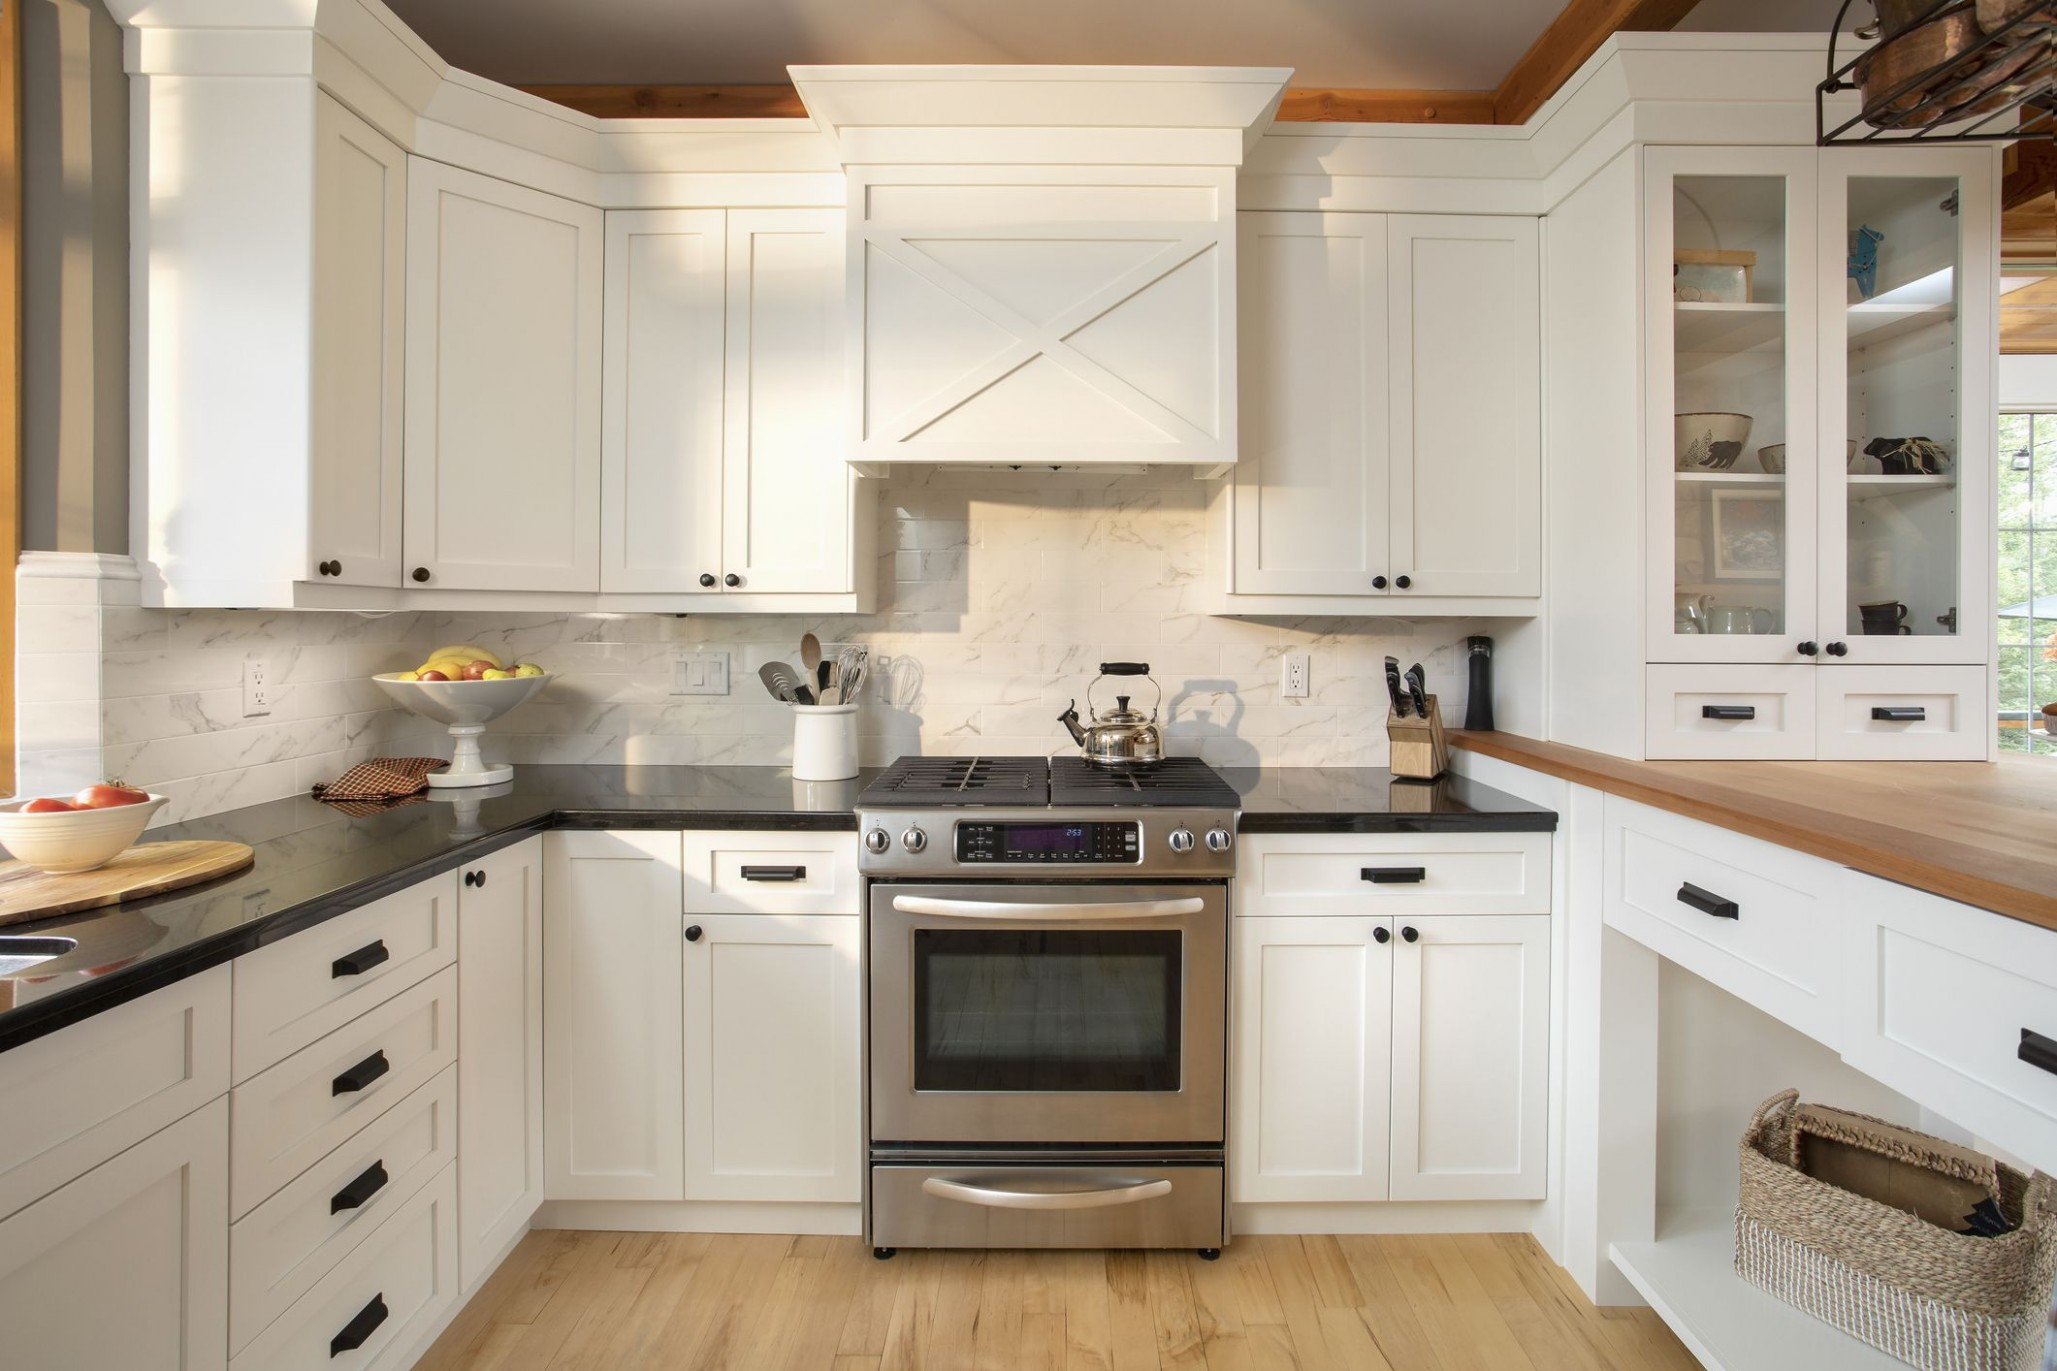 How to Buy Used Kitchen Cabinets and Save Money - Beautiful Kitchen Cabinets For Sale